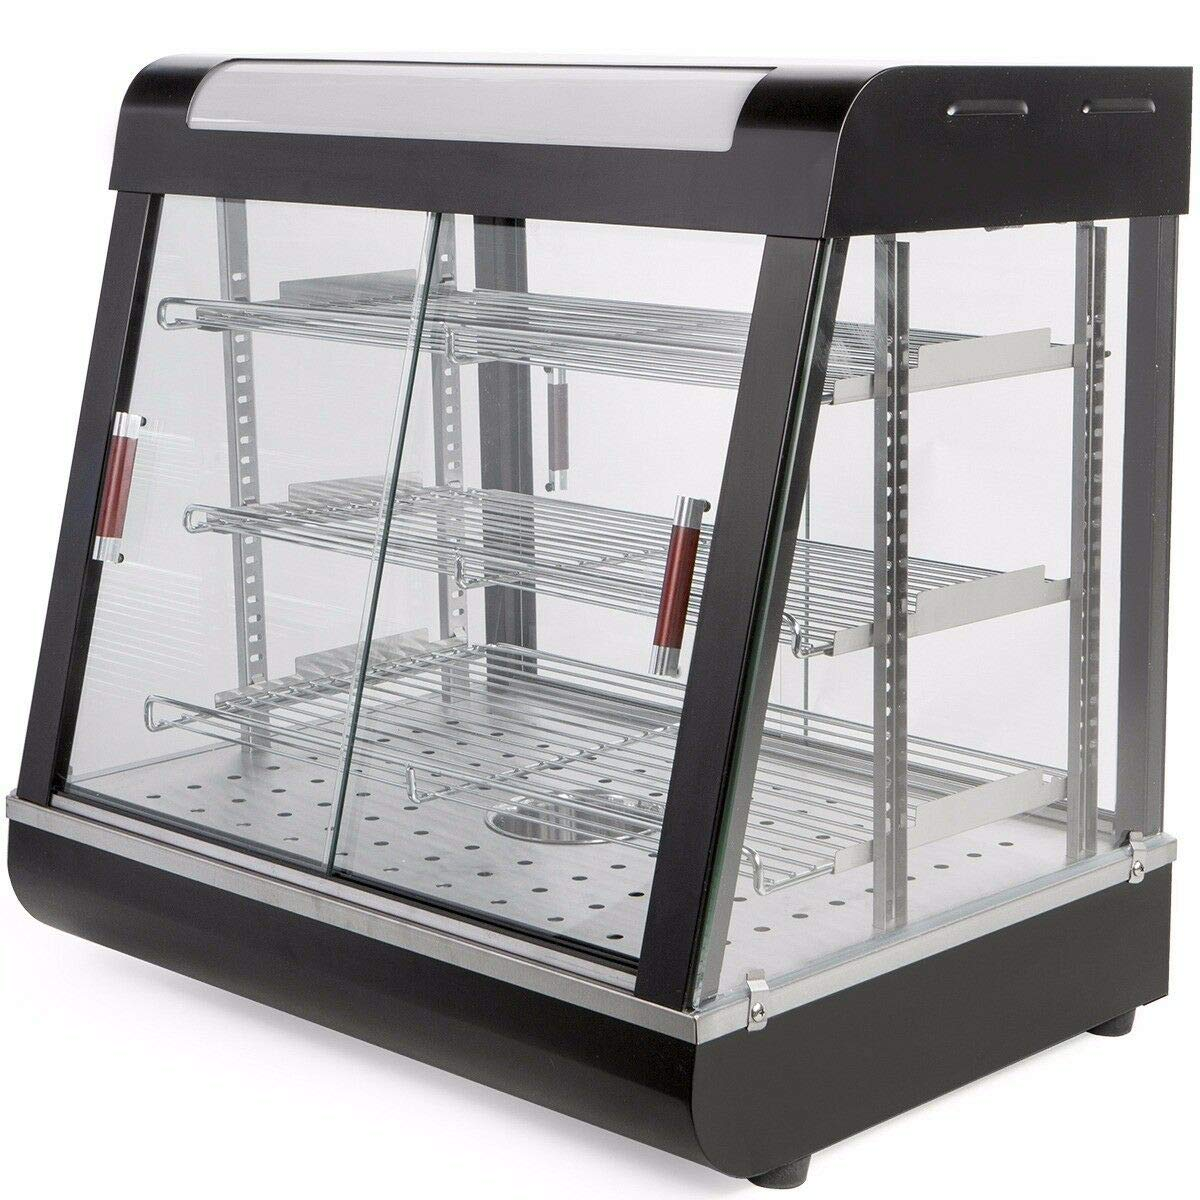 """Ensue Commercial Countertop Food Warmer Restaurant Display Case 48"""" Heated Cabinet Pizza Pastry Cabinet Hotdog, Black"""